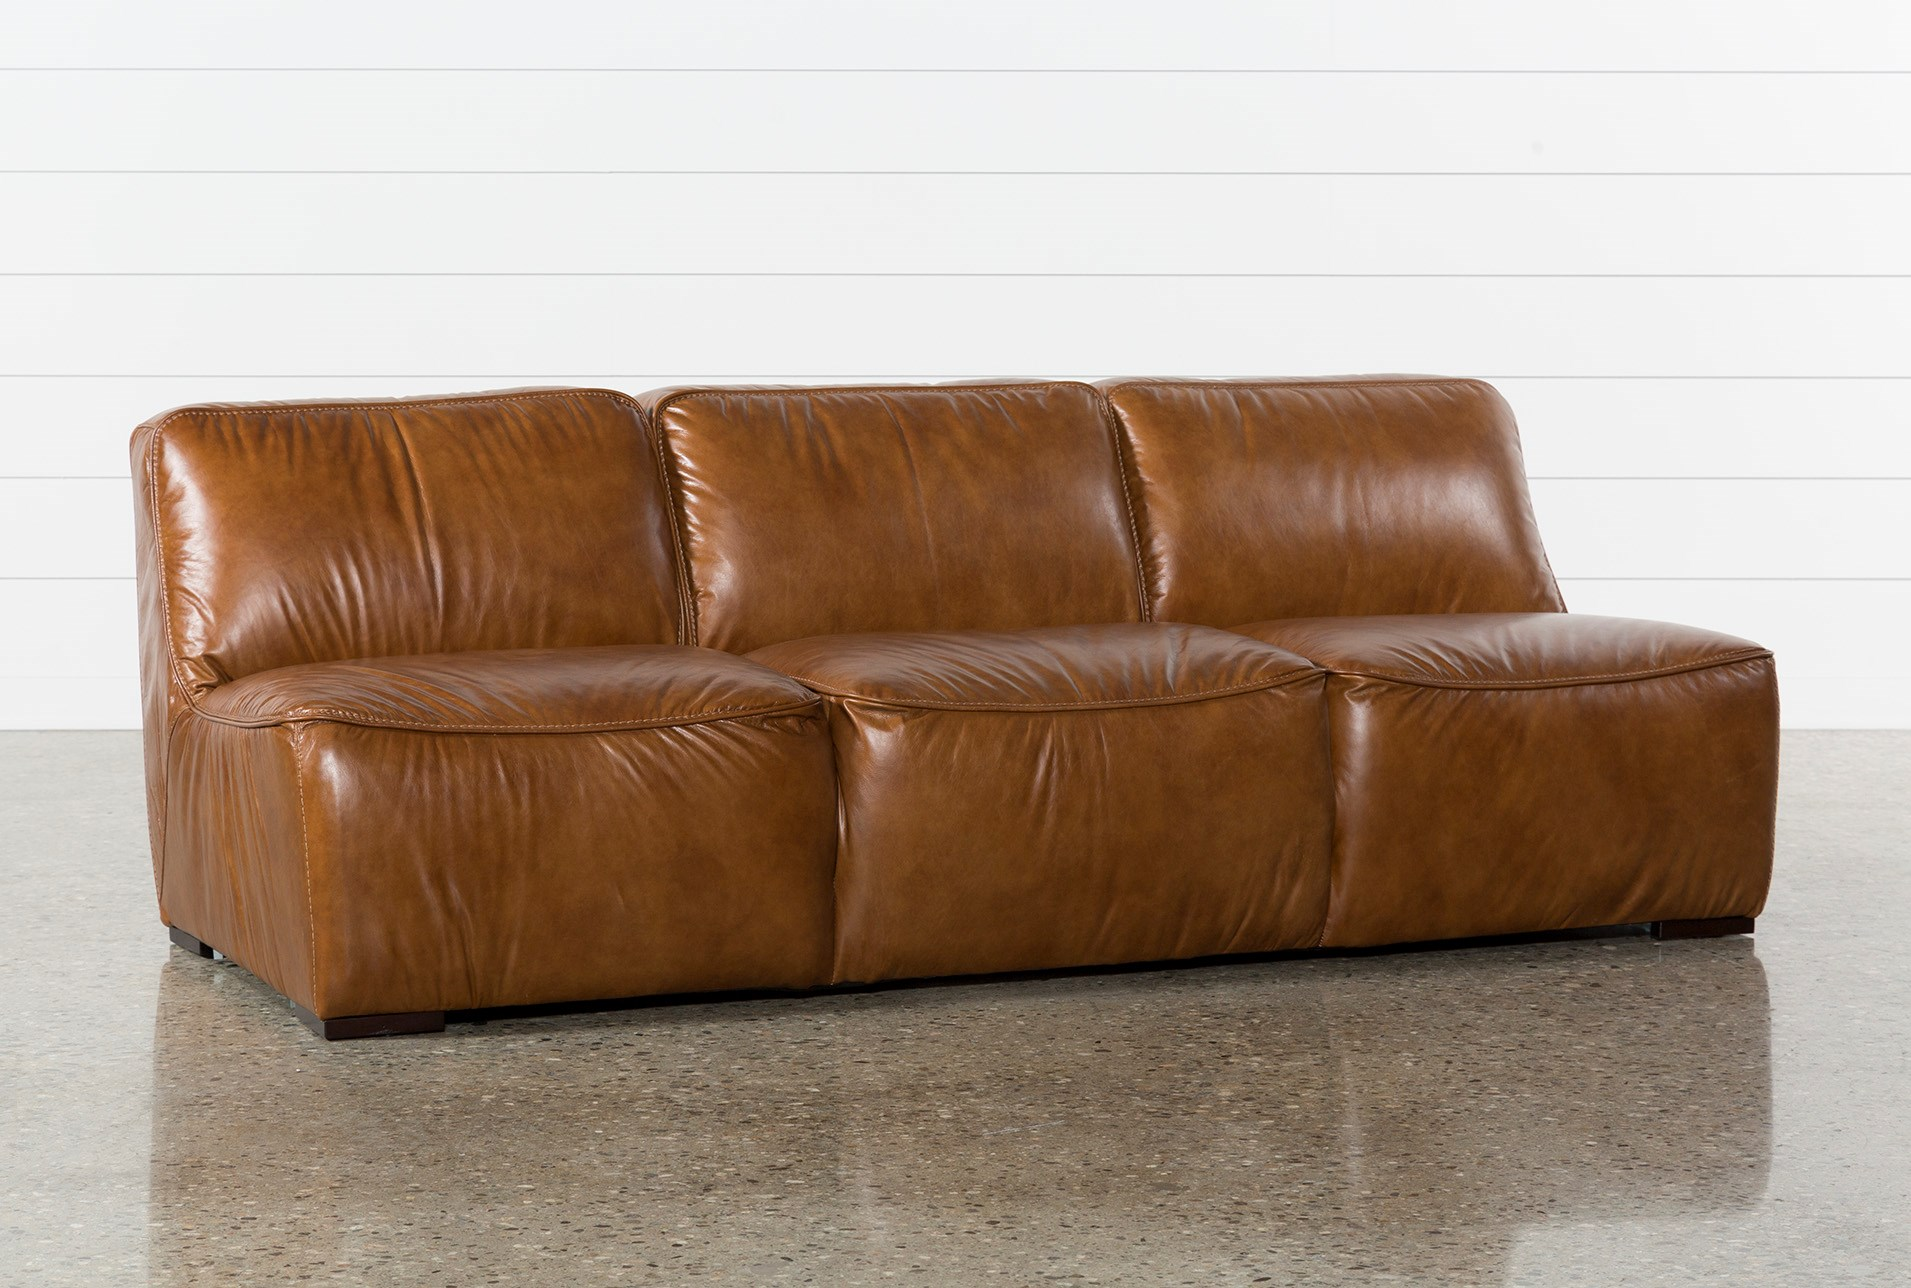 standard sofas sofa the and armless sectionals leather toffee tf modern couch narmbk new